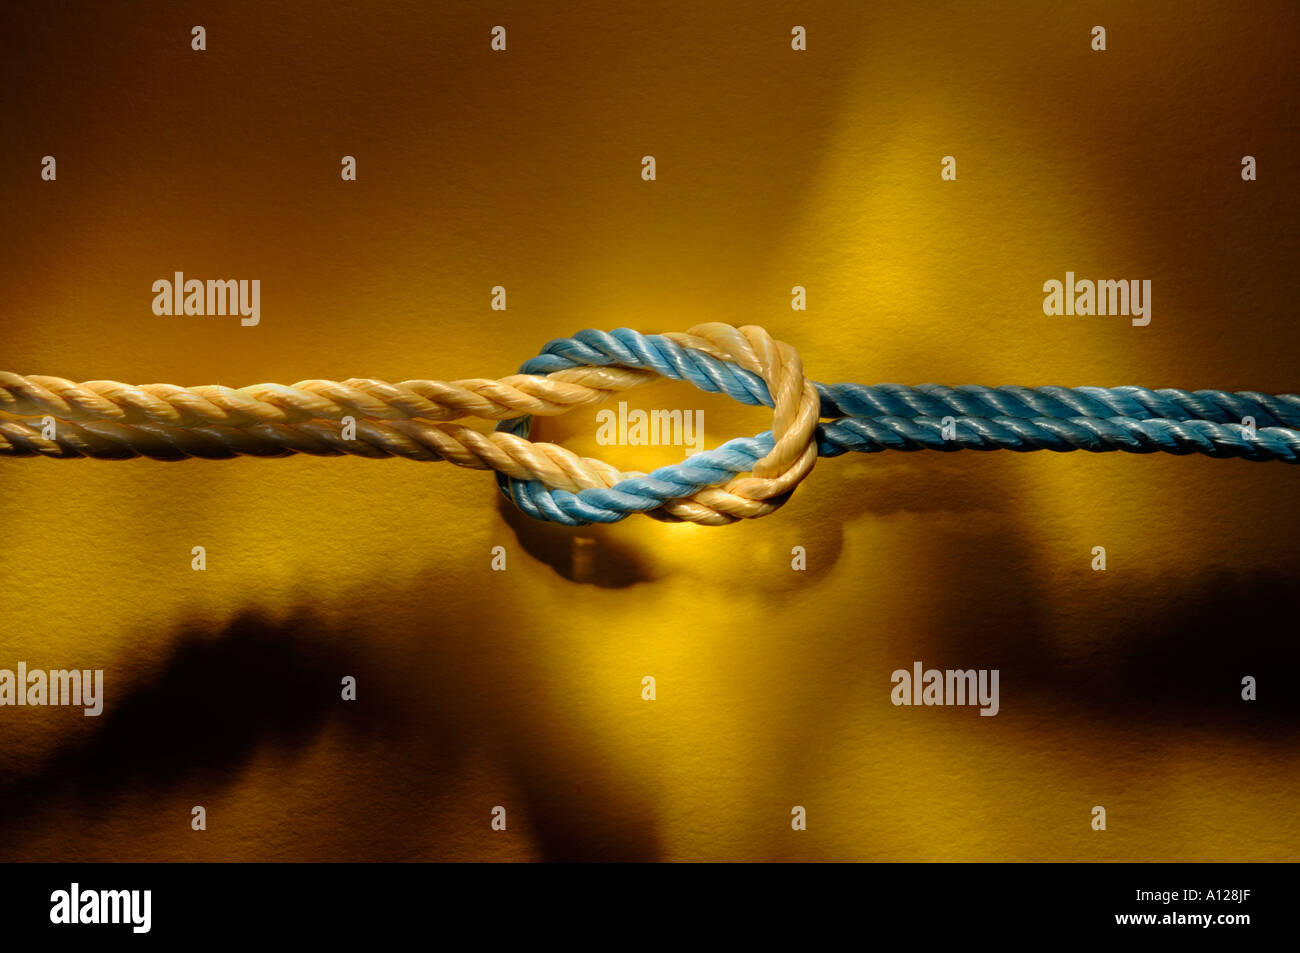 Knotted rope - Stock Image